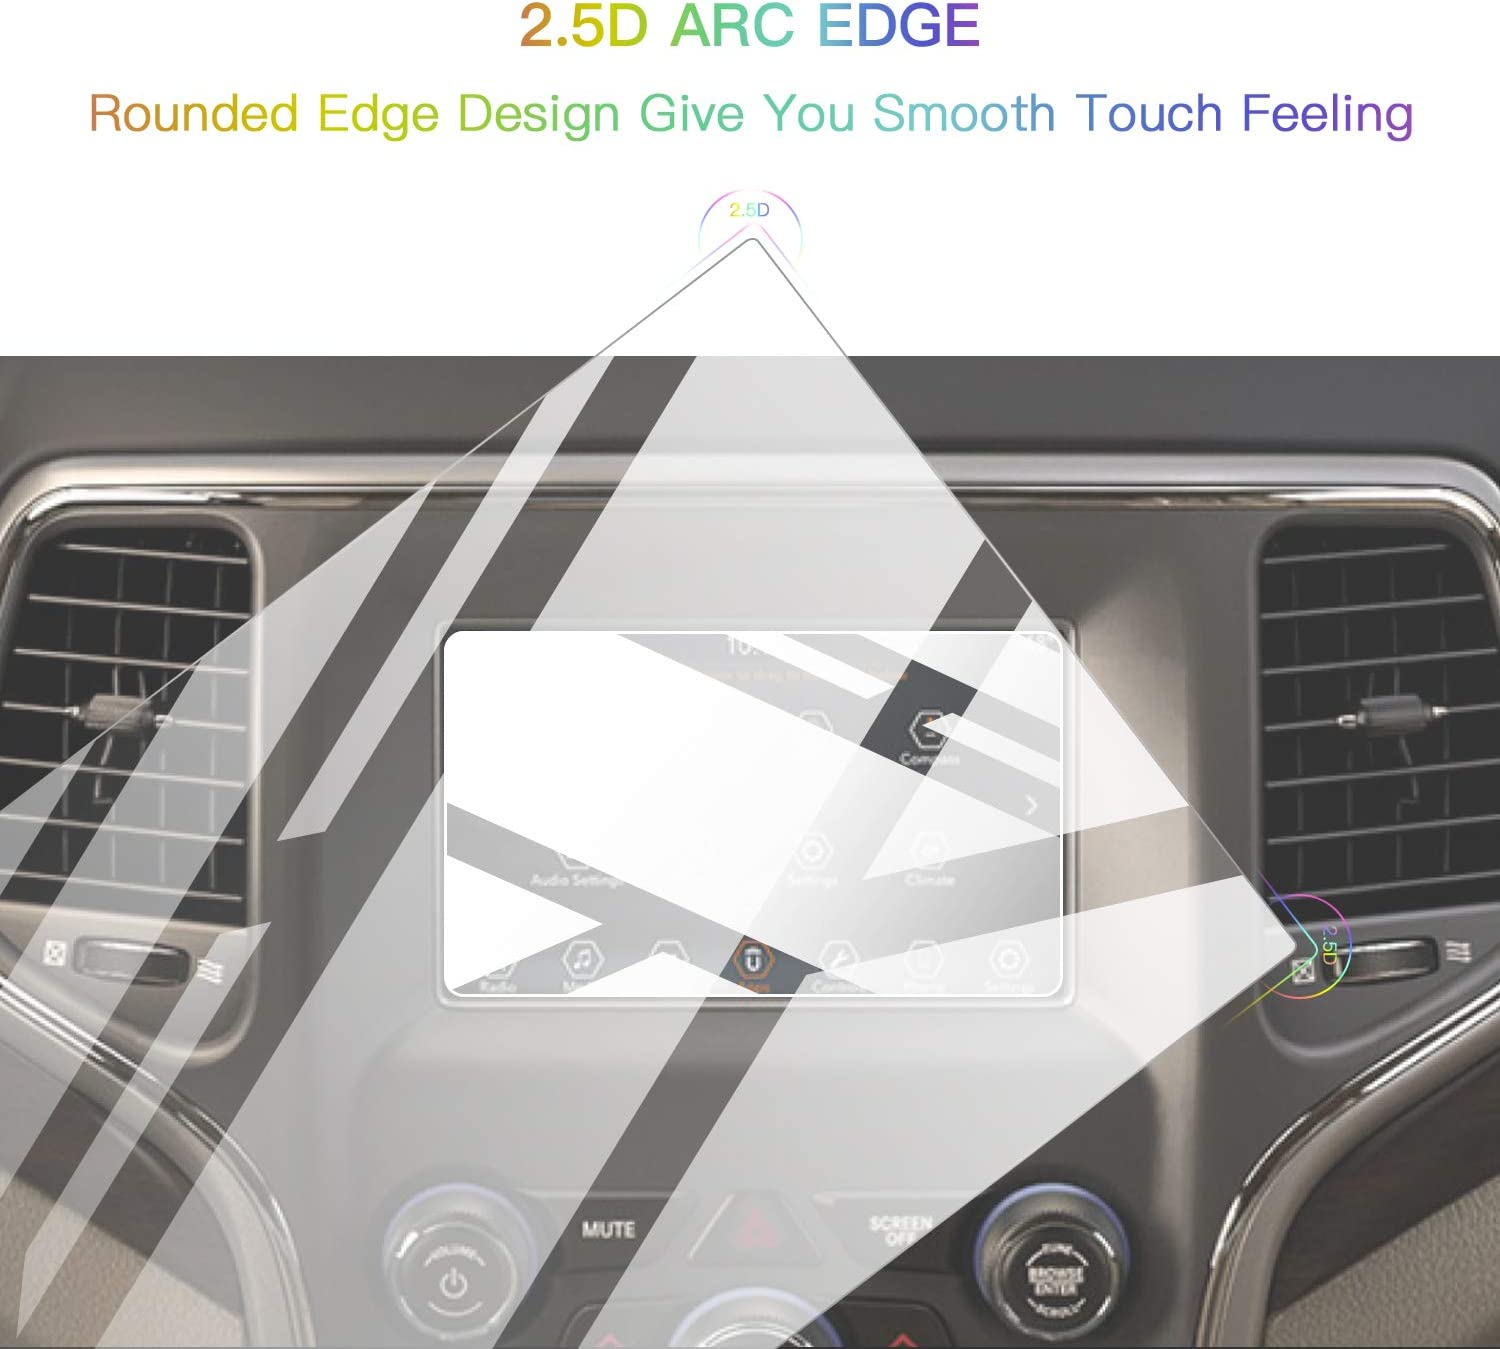 2019 2020 8.4In Screen Protector Foils for 2019 2020 Grand Cherokee Uconnect Navigation Display Tempered Glass 9H Hardness Anti Glare /& Scratch HD Clear Jeep LCD GPS Touch Screen Protective Film